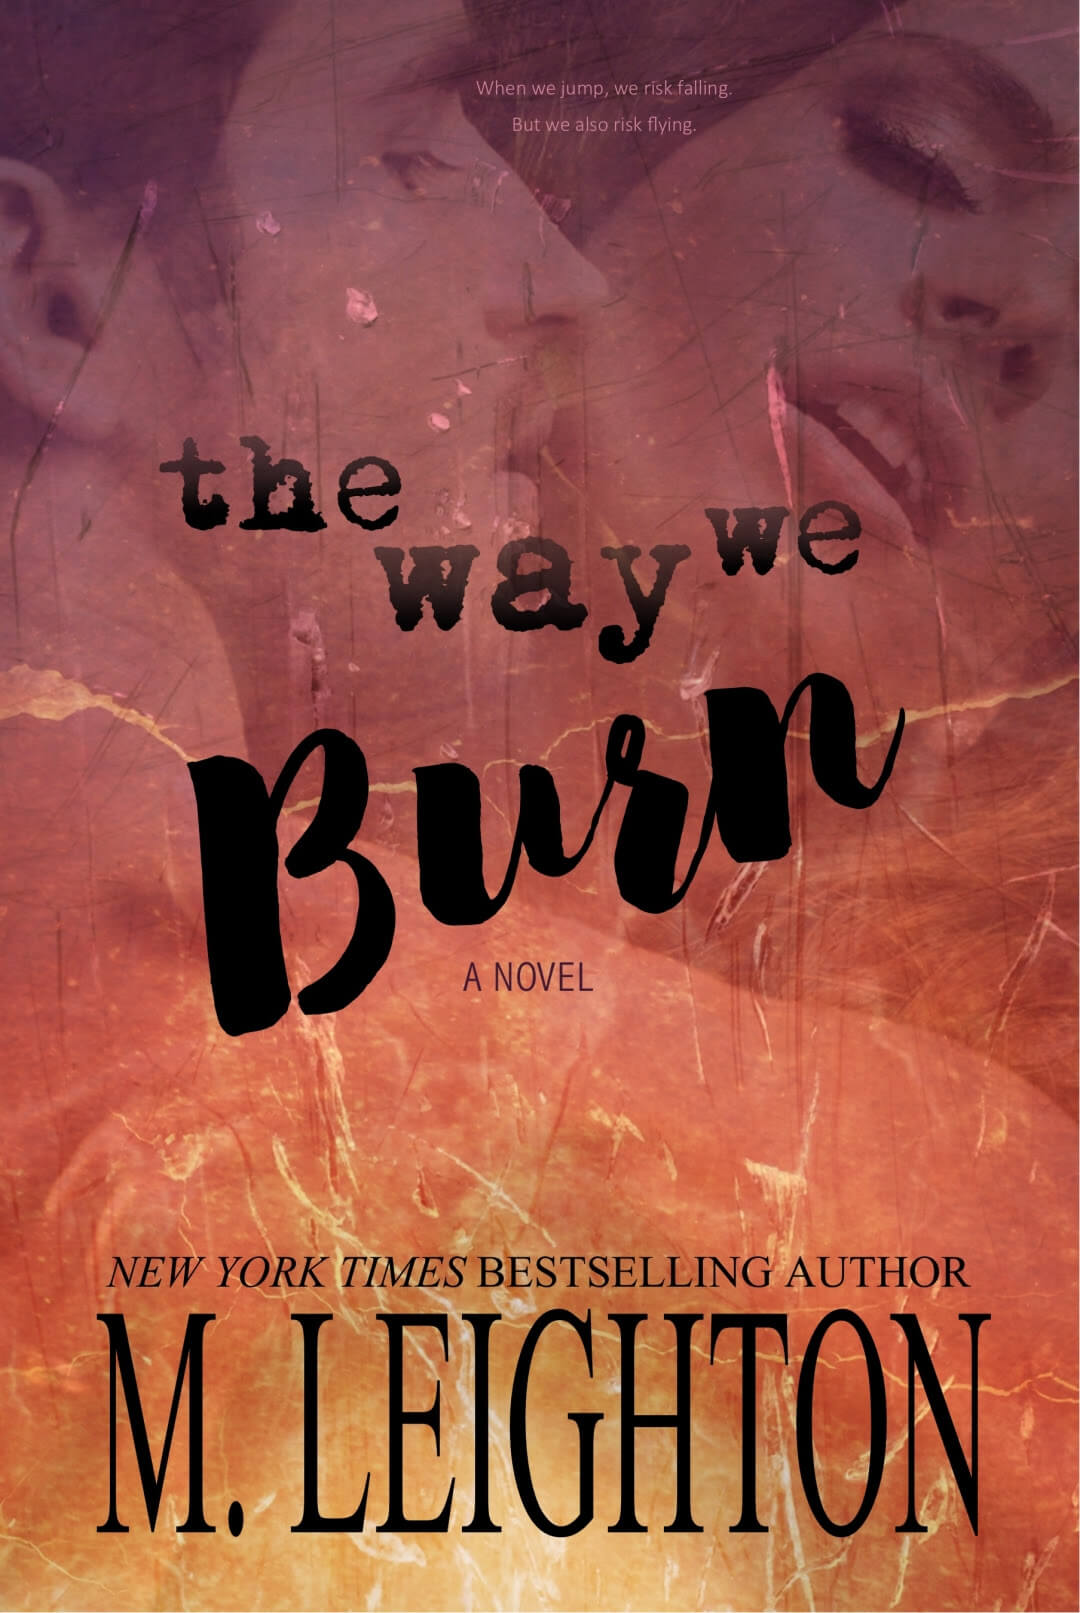 * Cover Reveal * The Way We Burn by Michelle Leighton * Coming June 24th *